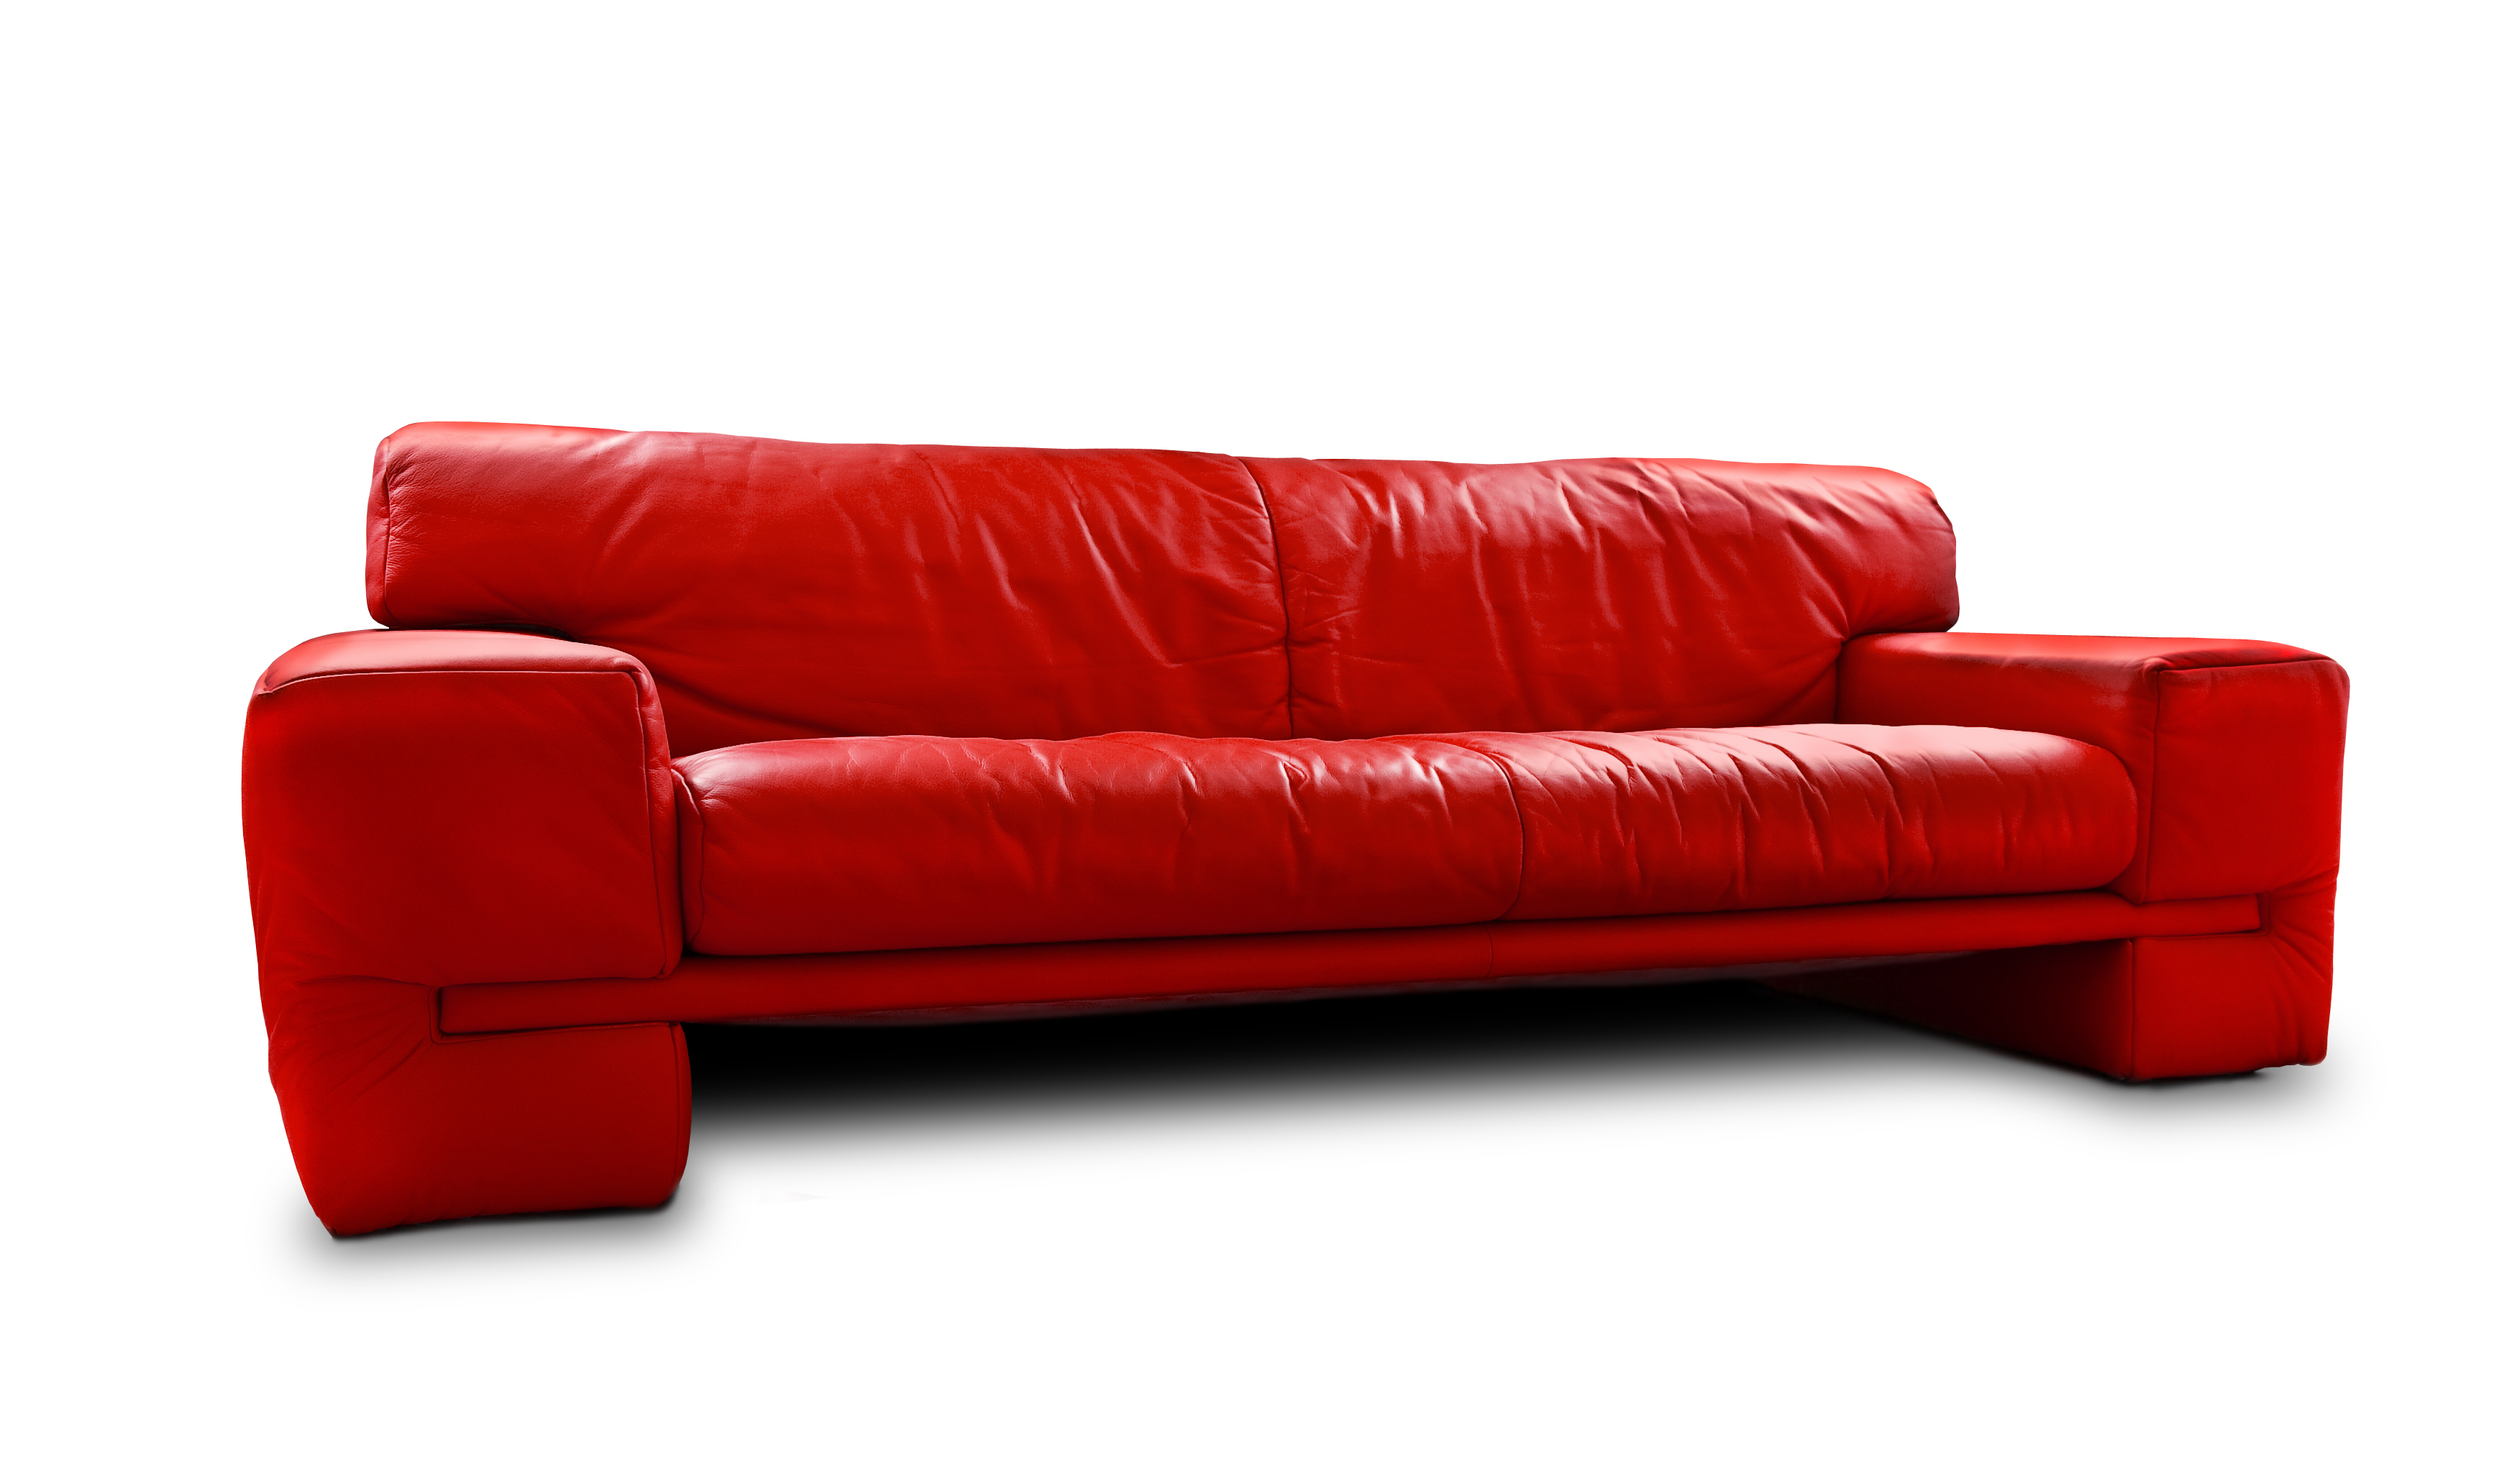 Favorite Red Sofas And Chairs Pertaining To Furniture: Excellent Living Room Furniture Design With Elegant (View 3 of 20)